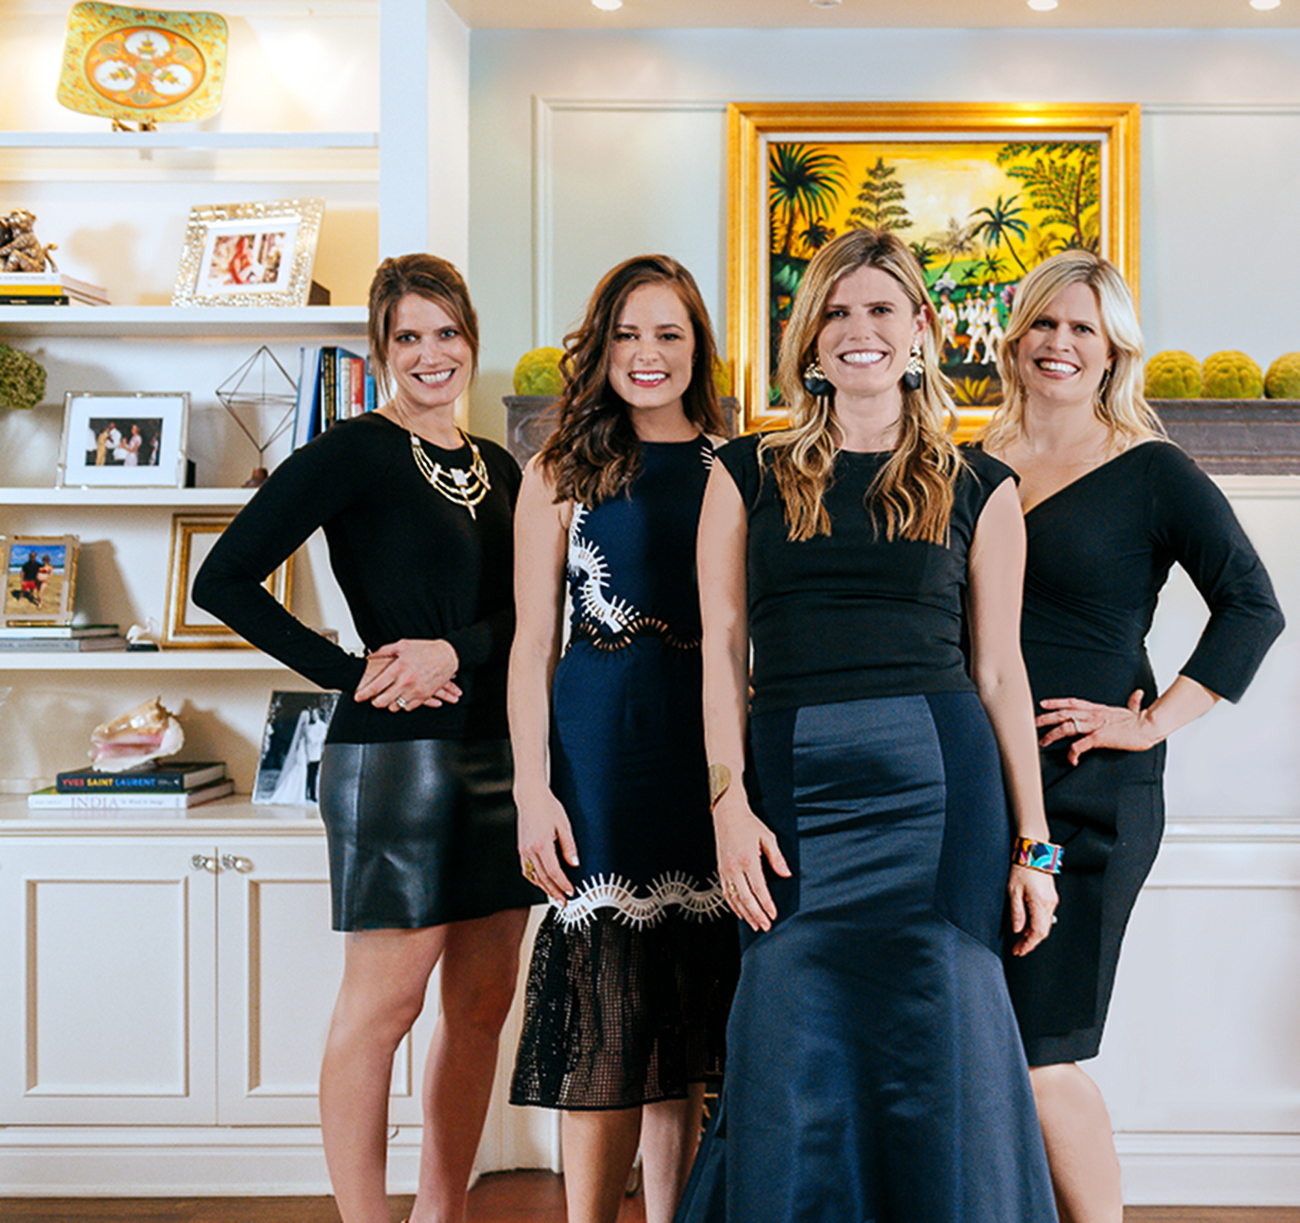 "Pictured: The ladies of Sarah Whit Interior Design / Story: ""Sarah Vaile Turned Her Quarter-Life Crisis Into A Dream Interior Design Business"" / Image courtesy of Sarah Whit Interior Design // Published: 4.5.18"